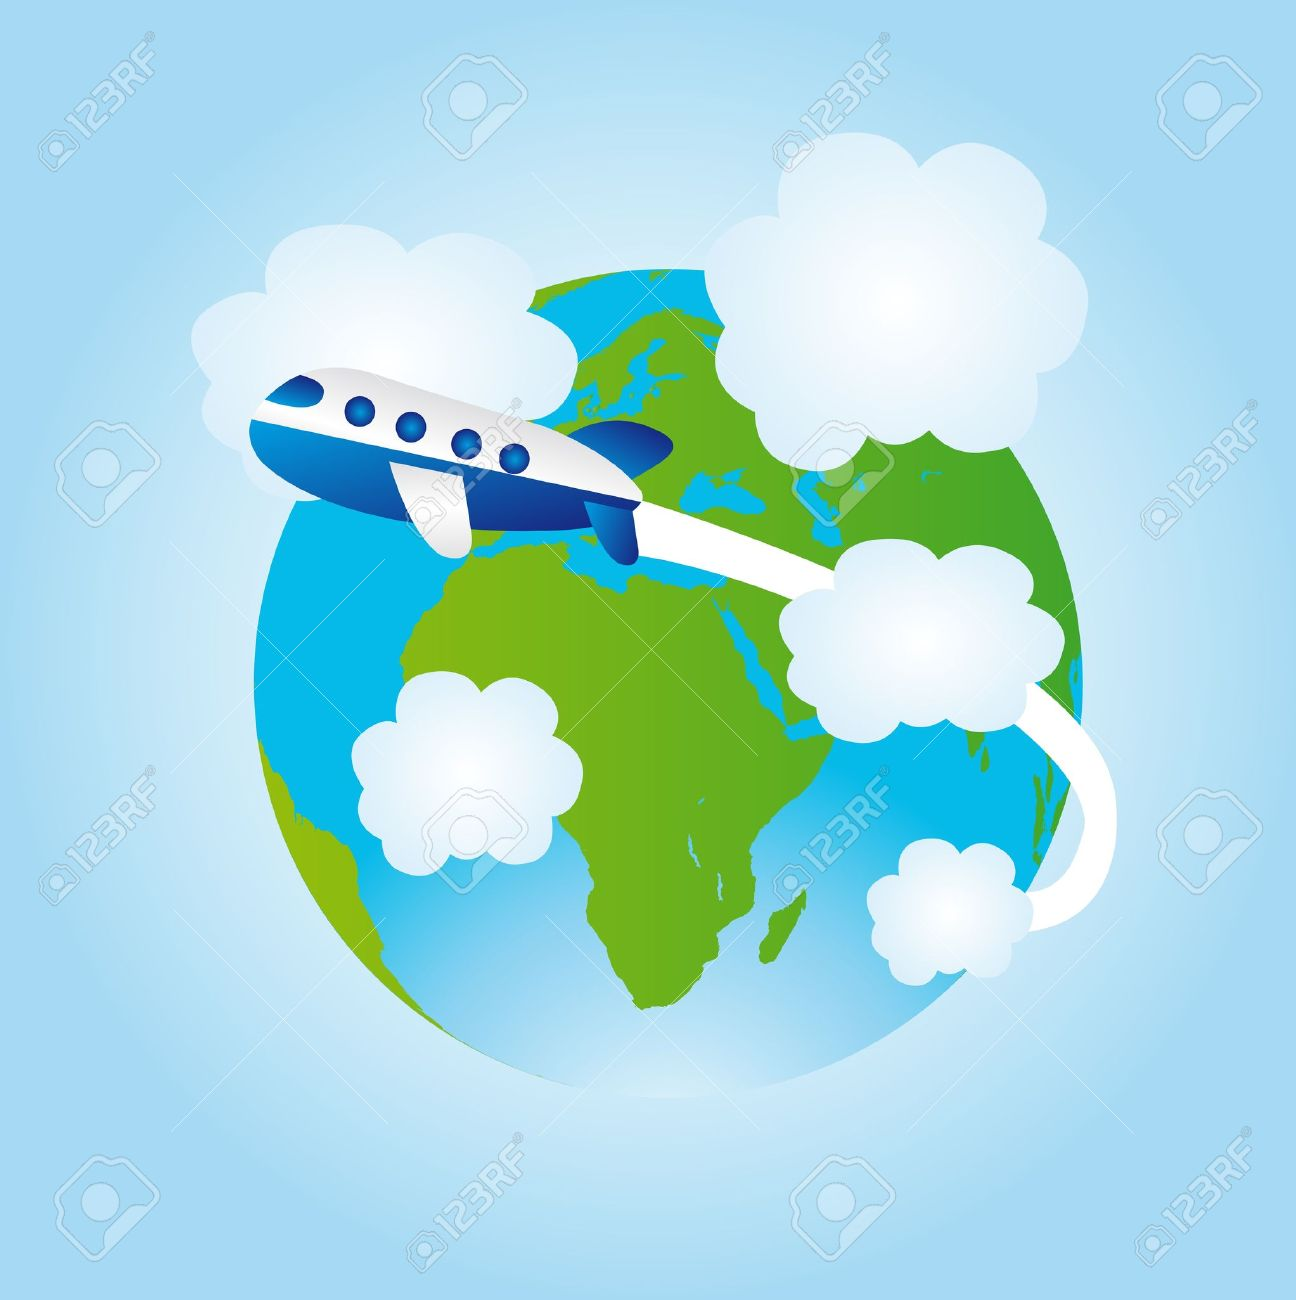 vector download Travel earth icon image. Airplane around the world clipart